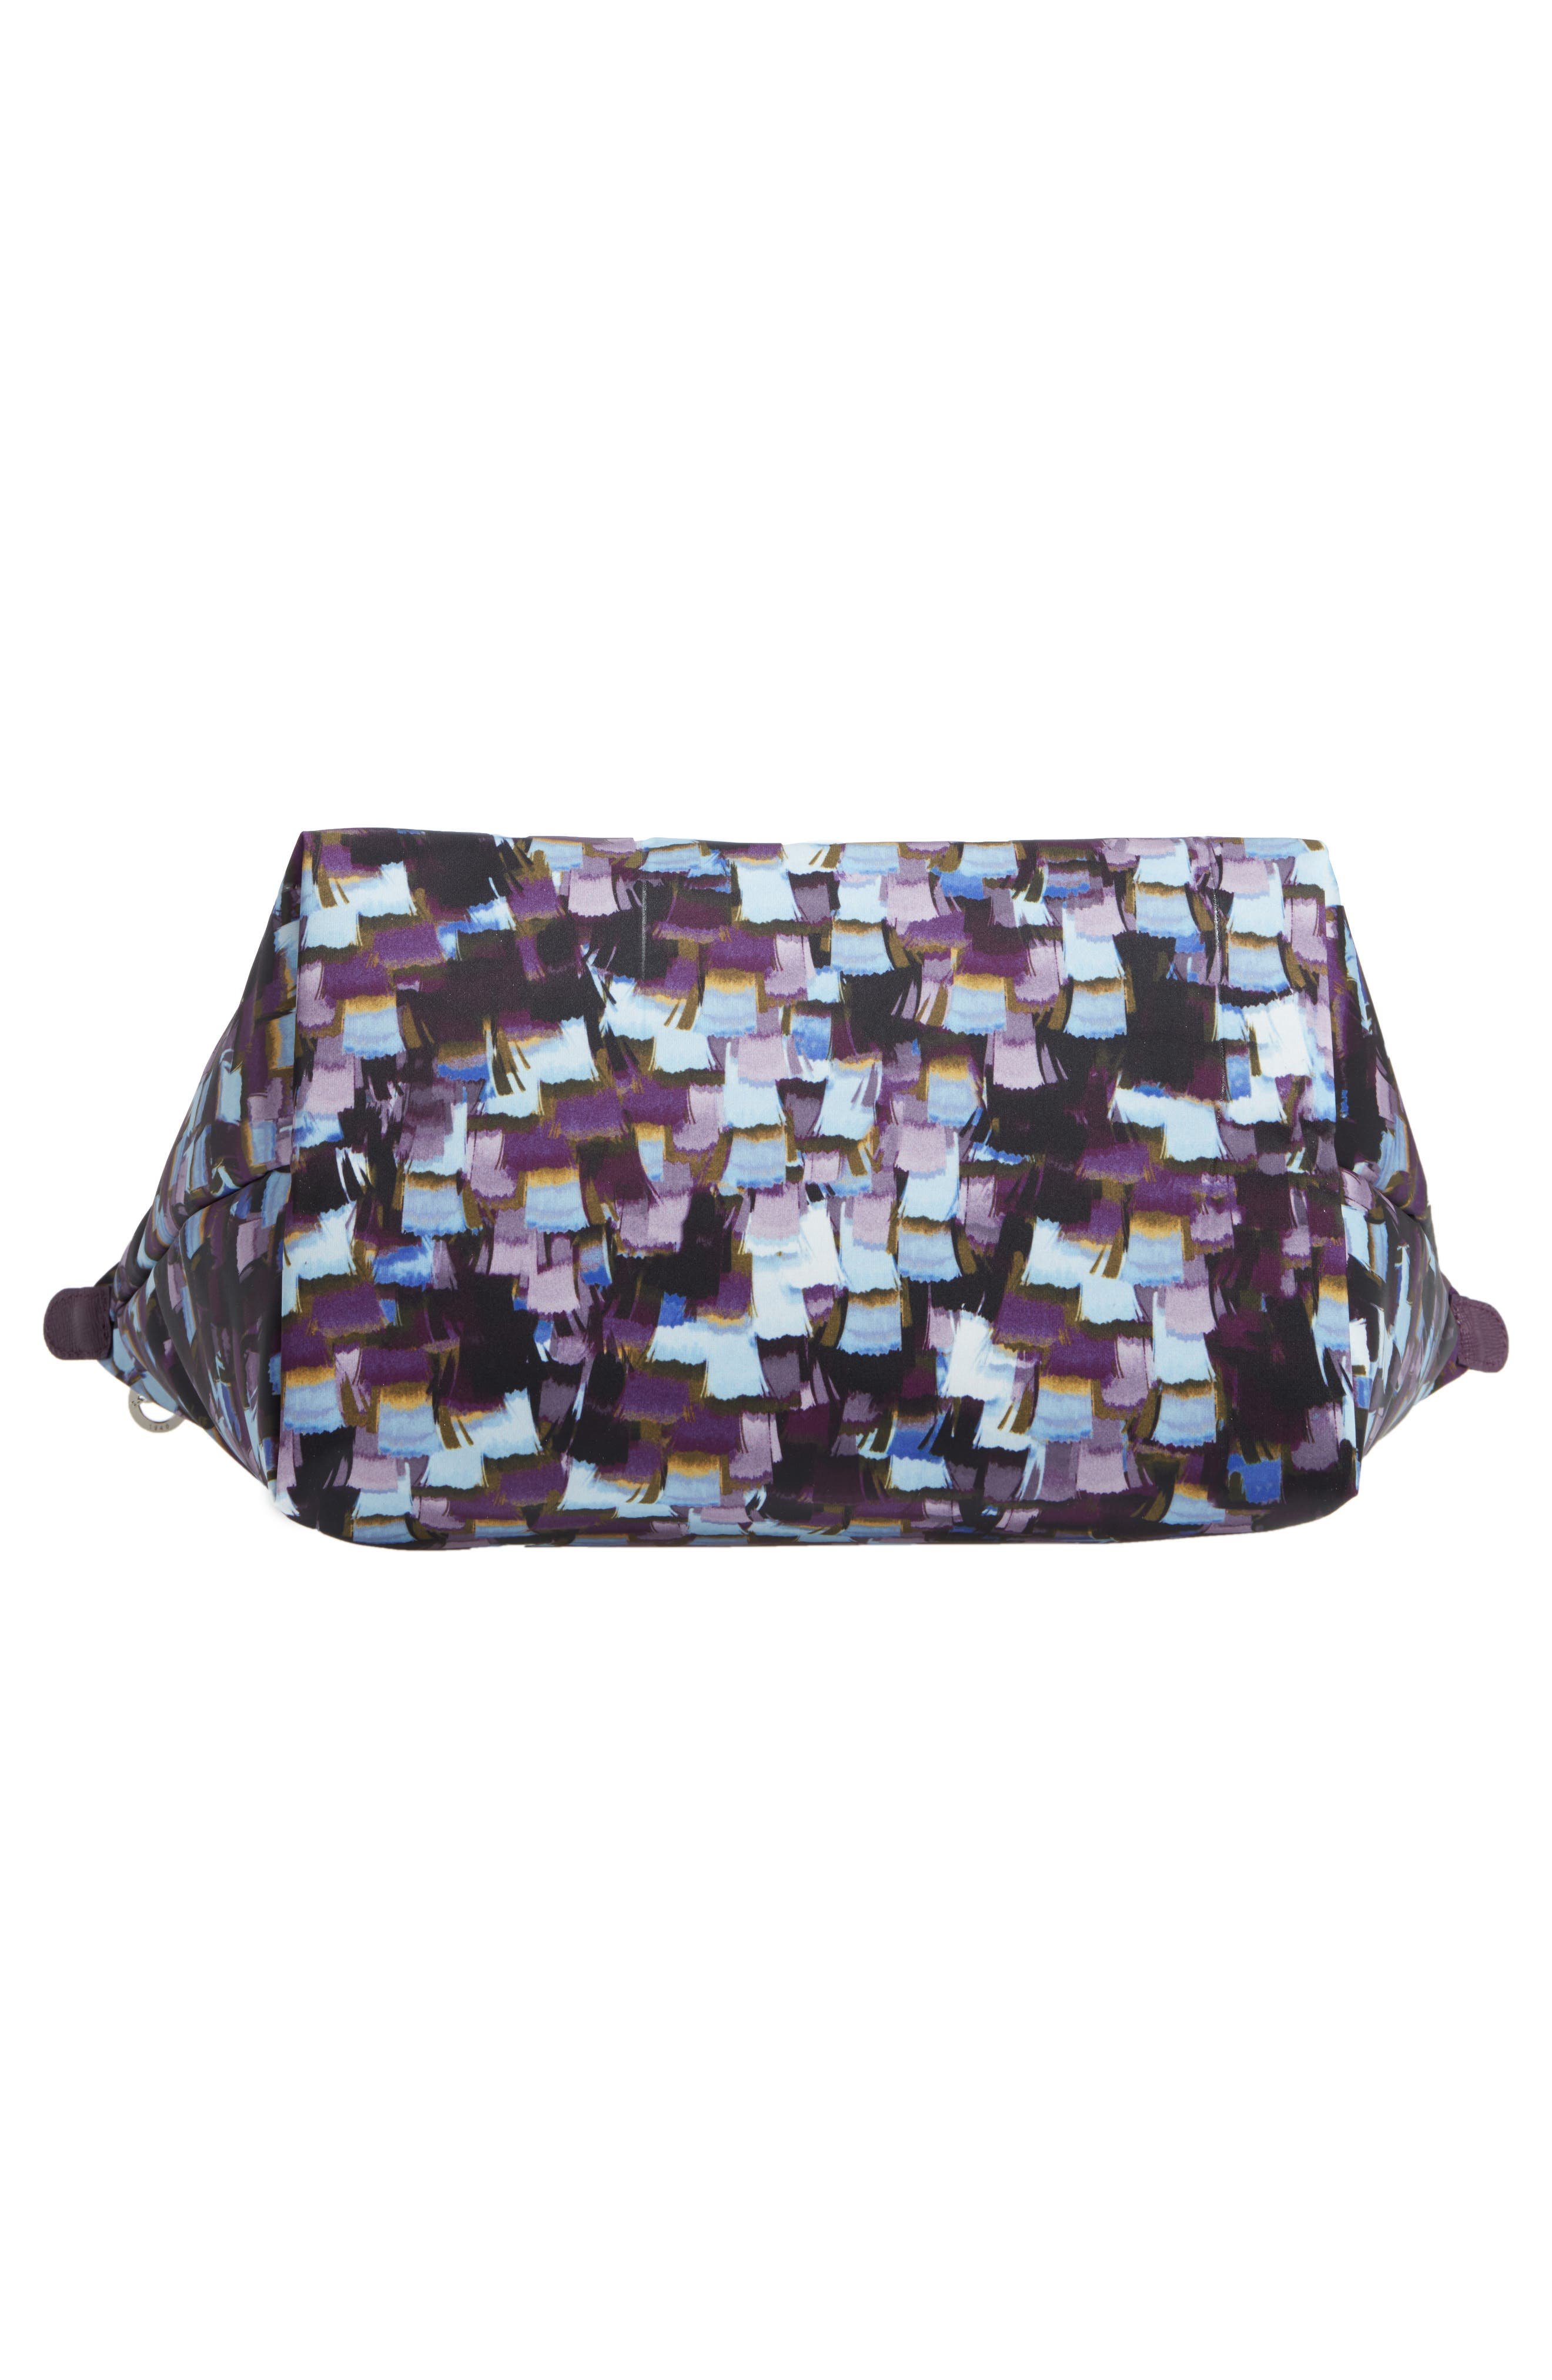 Le Pliage Neo - Vibrations Large Nylon Tote,                             Alternate thumbnail 4, color,                             Deep Purple